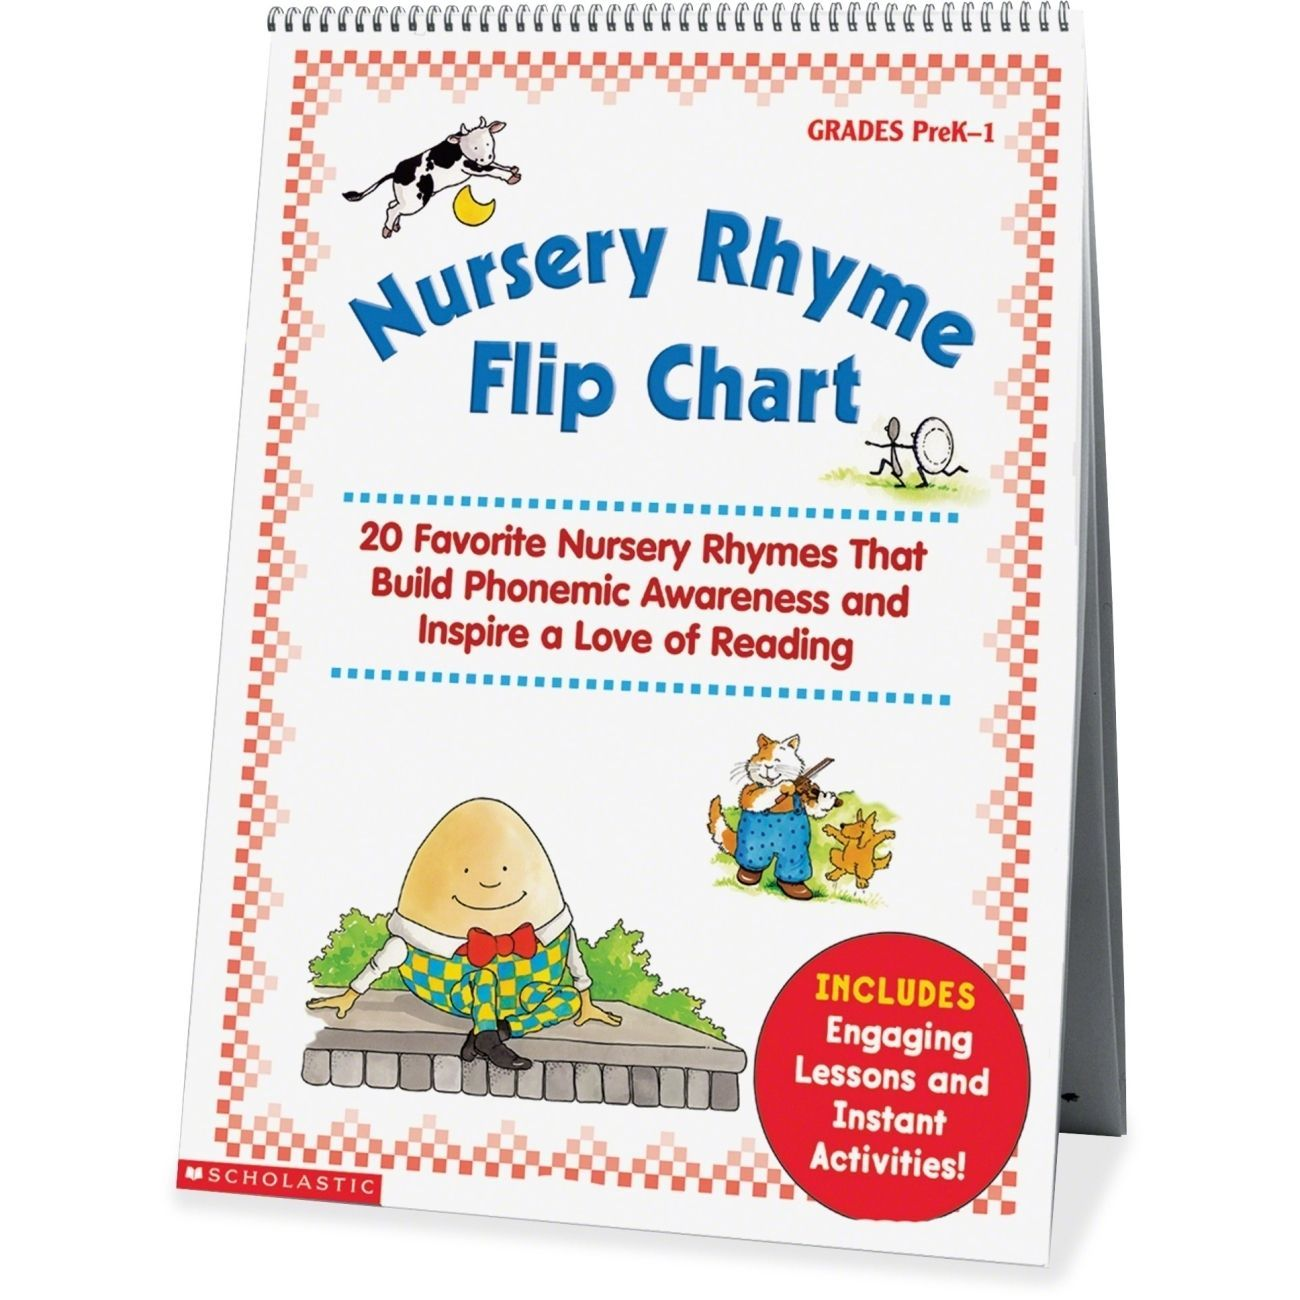 Functional Math Worksheets Word Building Phonemic Awareness Is A Joy With This Nursery Rhyme Flip  Free Printable Handwriting Worksheets For Kids Pdf with Scientific Worksheet Word  Laminated Flip Chart Featuring  Wellloved Nursery Rhymes Teachers  Can Turn To This Sturdy Colorful Resource Every Day To Teach Rhymes And  Word Kindergarten Spring Worksheets Word